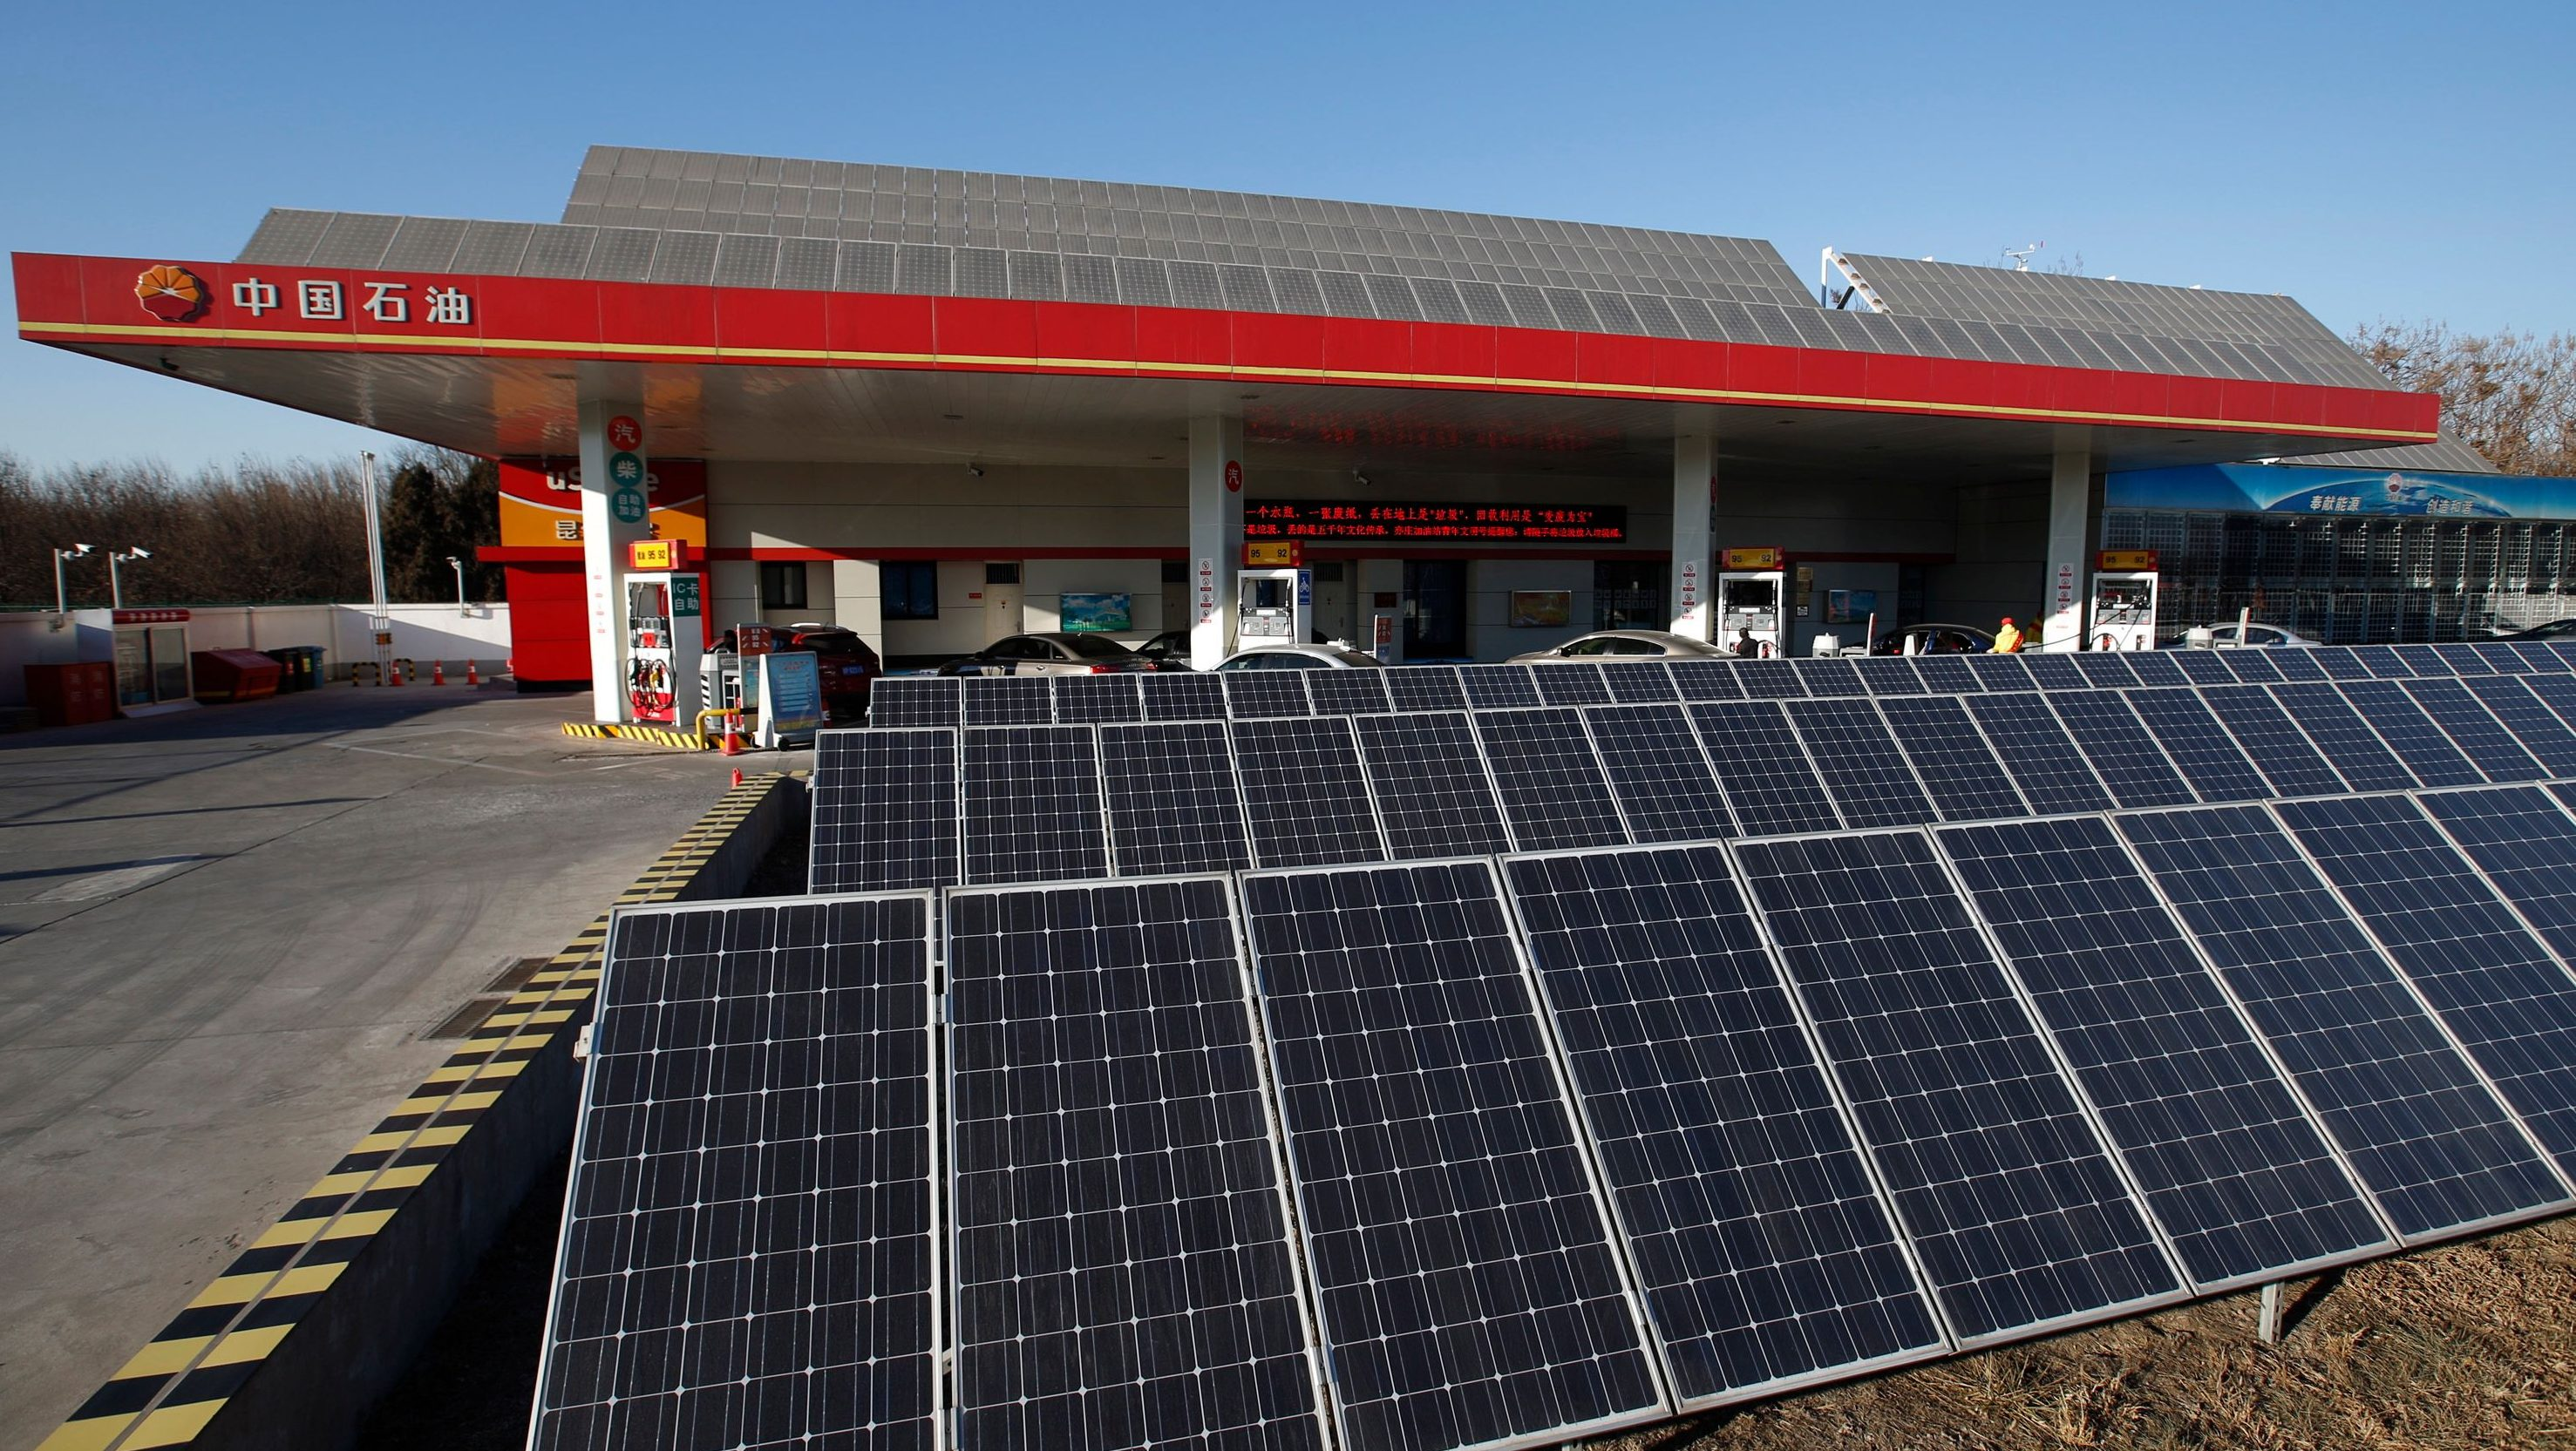 Solar panels are seen at PetroChina's solar-powered Yizhuang gas station in Beijing, January 9, 2015. Reuters photographers from Mali to Mexico have shot a series of pictures of fuel stations. Whether it is plastic bottles by the roadside in Malaysia or a futuristic forecourt in Los Angeles, fuel stations help define our world. Oil prices steadied above $48 a barrel on Tuesday, recovering from earlier losses as the dollar weakened against the euro. Oil prices have dropped nearly 60 percent since peaking in June 2014 on ample global supplies from the U.S. shale oil boom and a decision by OPEC to keep its production quotas unchanged.